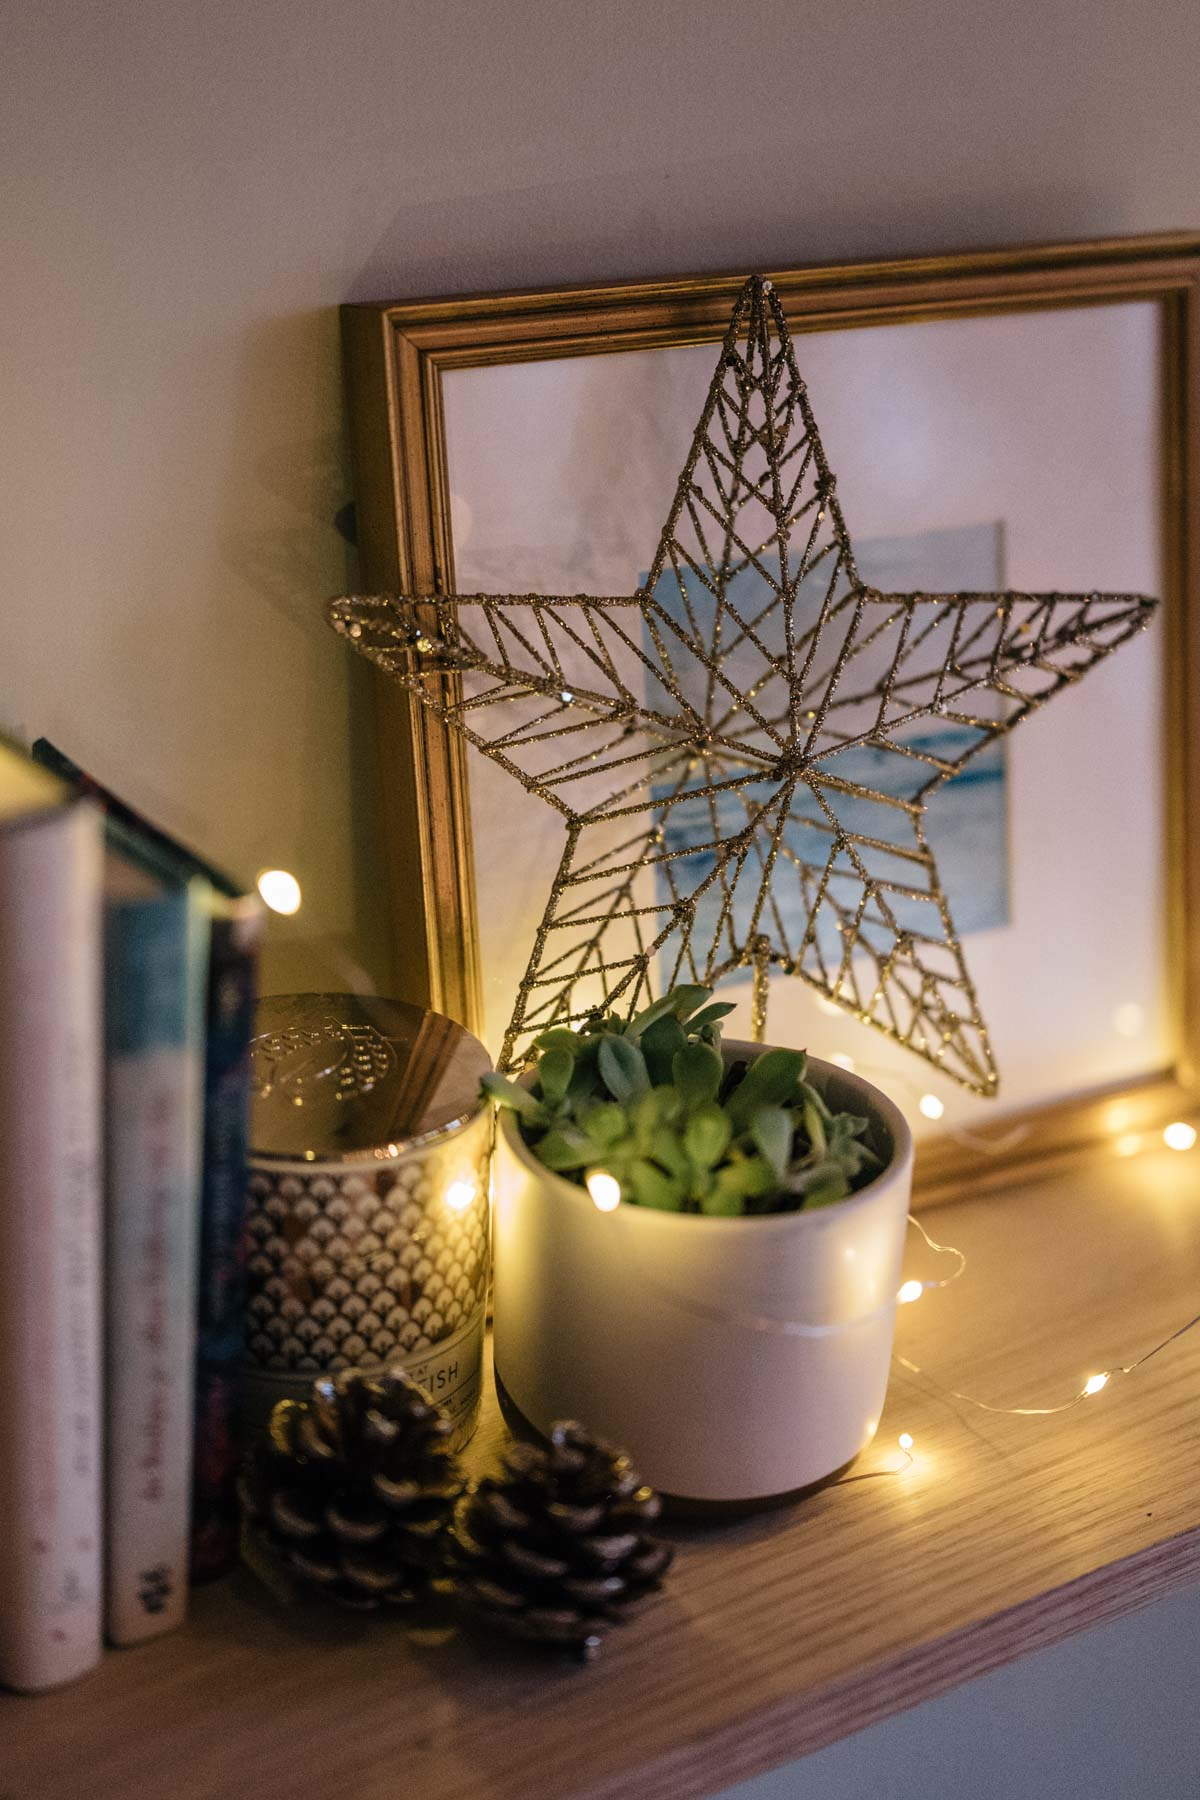 Jess Ann Kirby decorates her home for the holidays with easy DIY decor such as a tree topper with pine cones